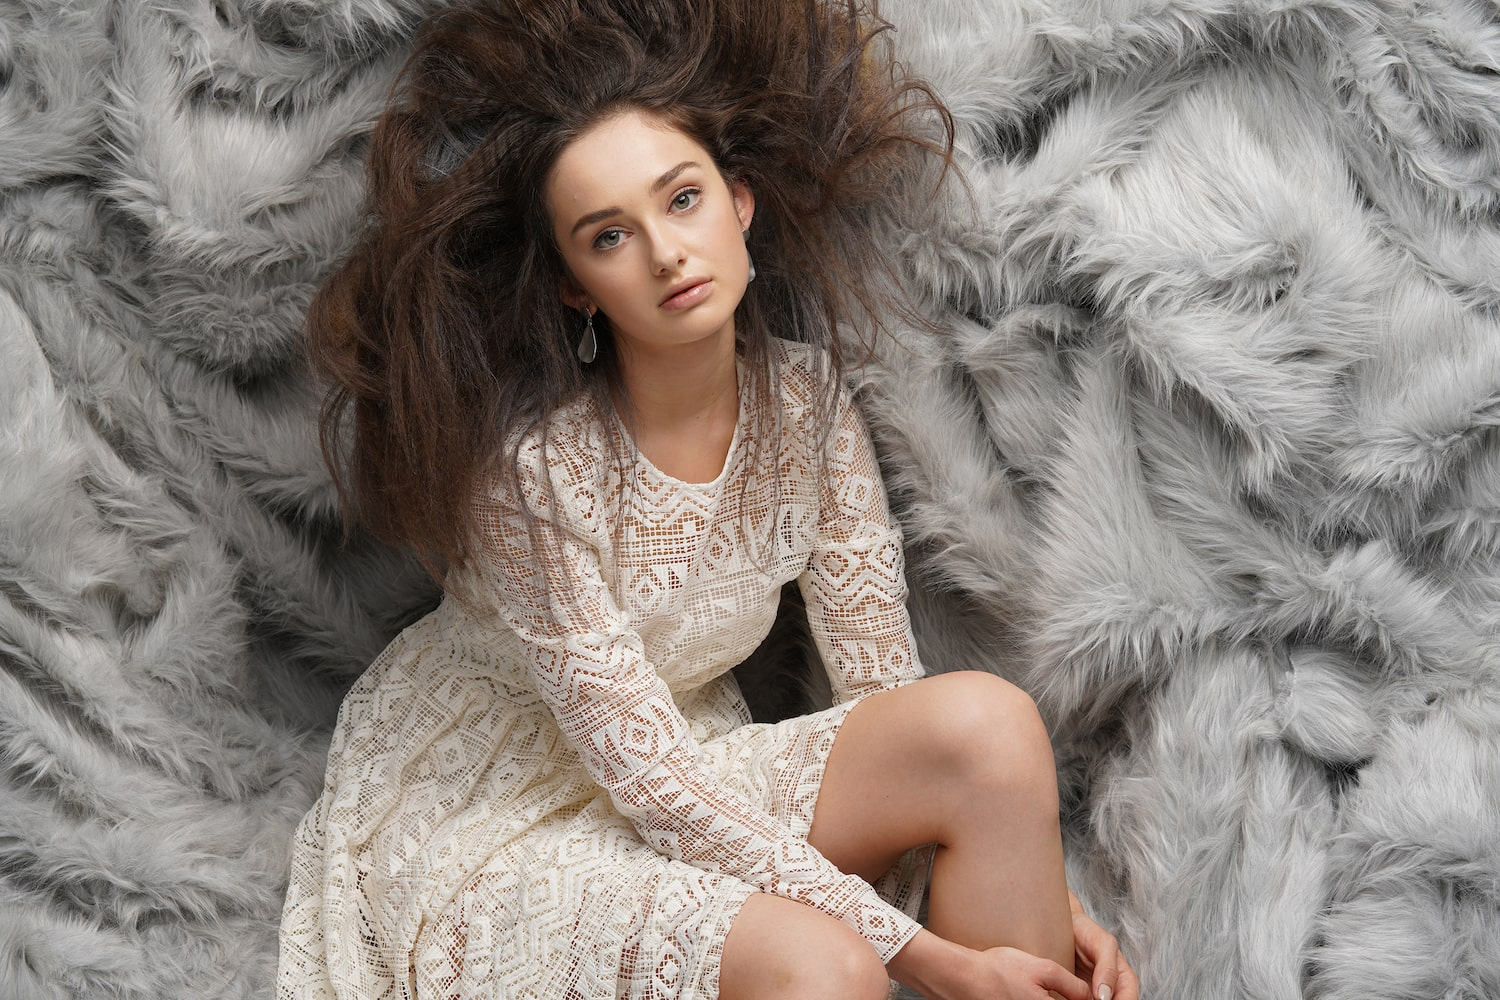 mid-shot-model-in-white-dress-against-fur-background-alpha-7RIV